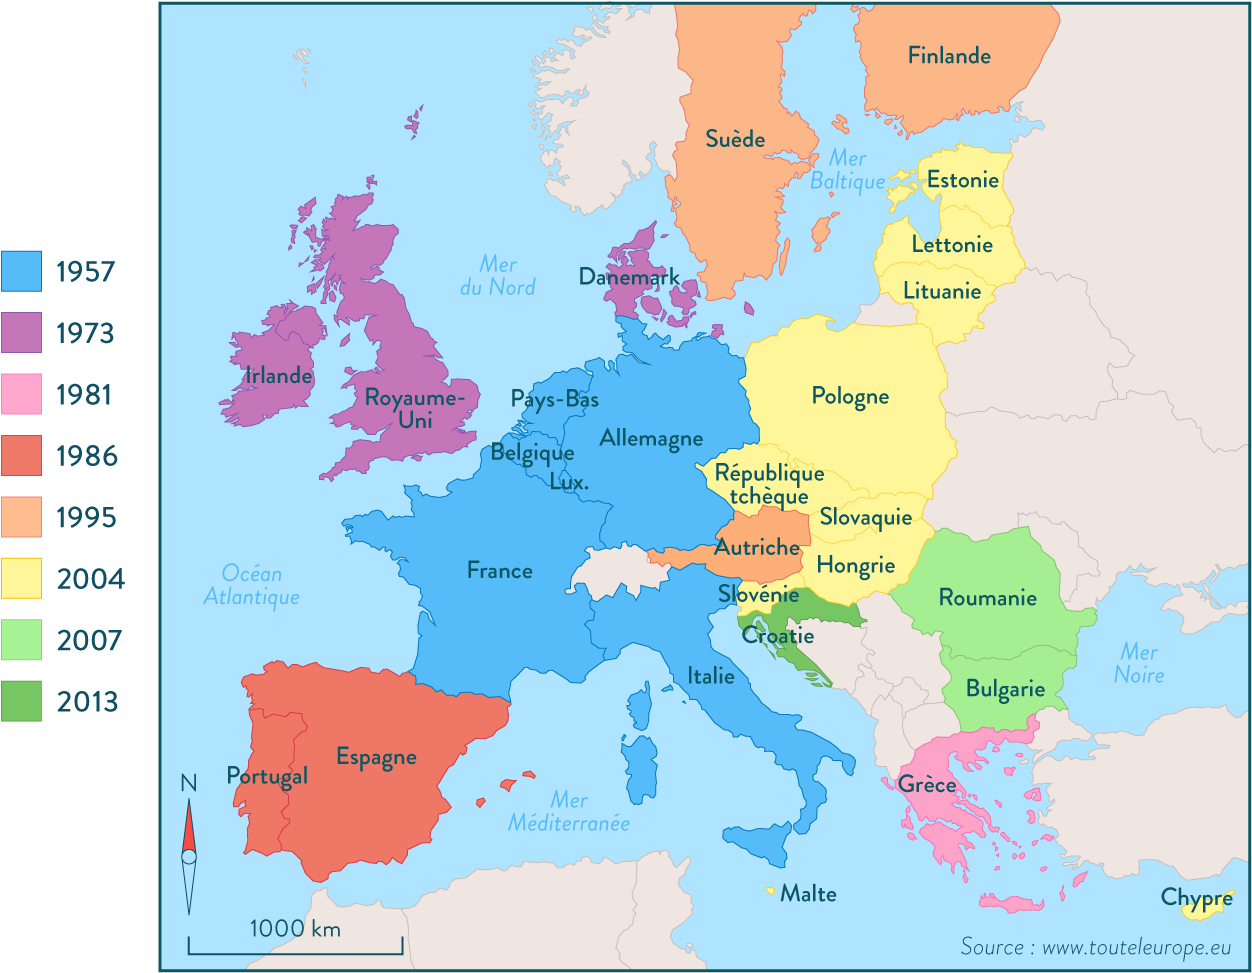 Carte des élargissements successifs de l'Europe